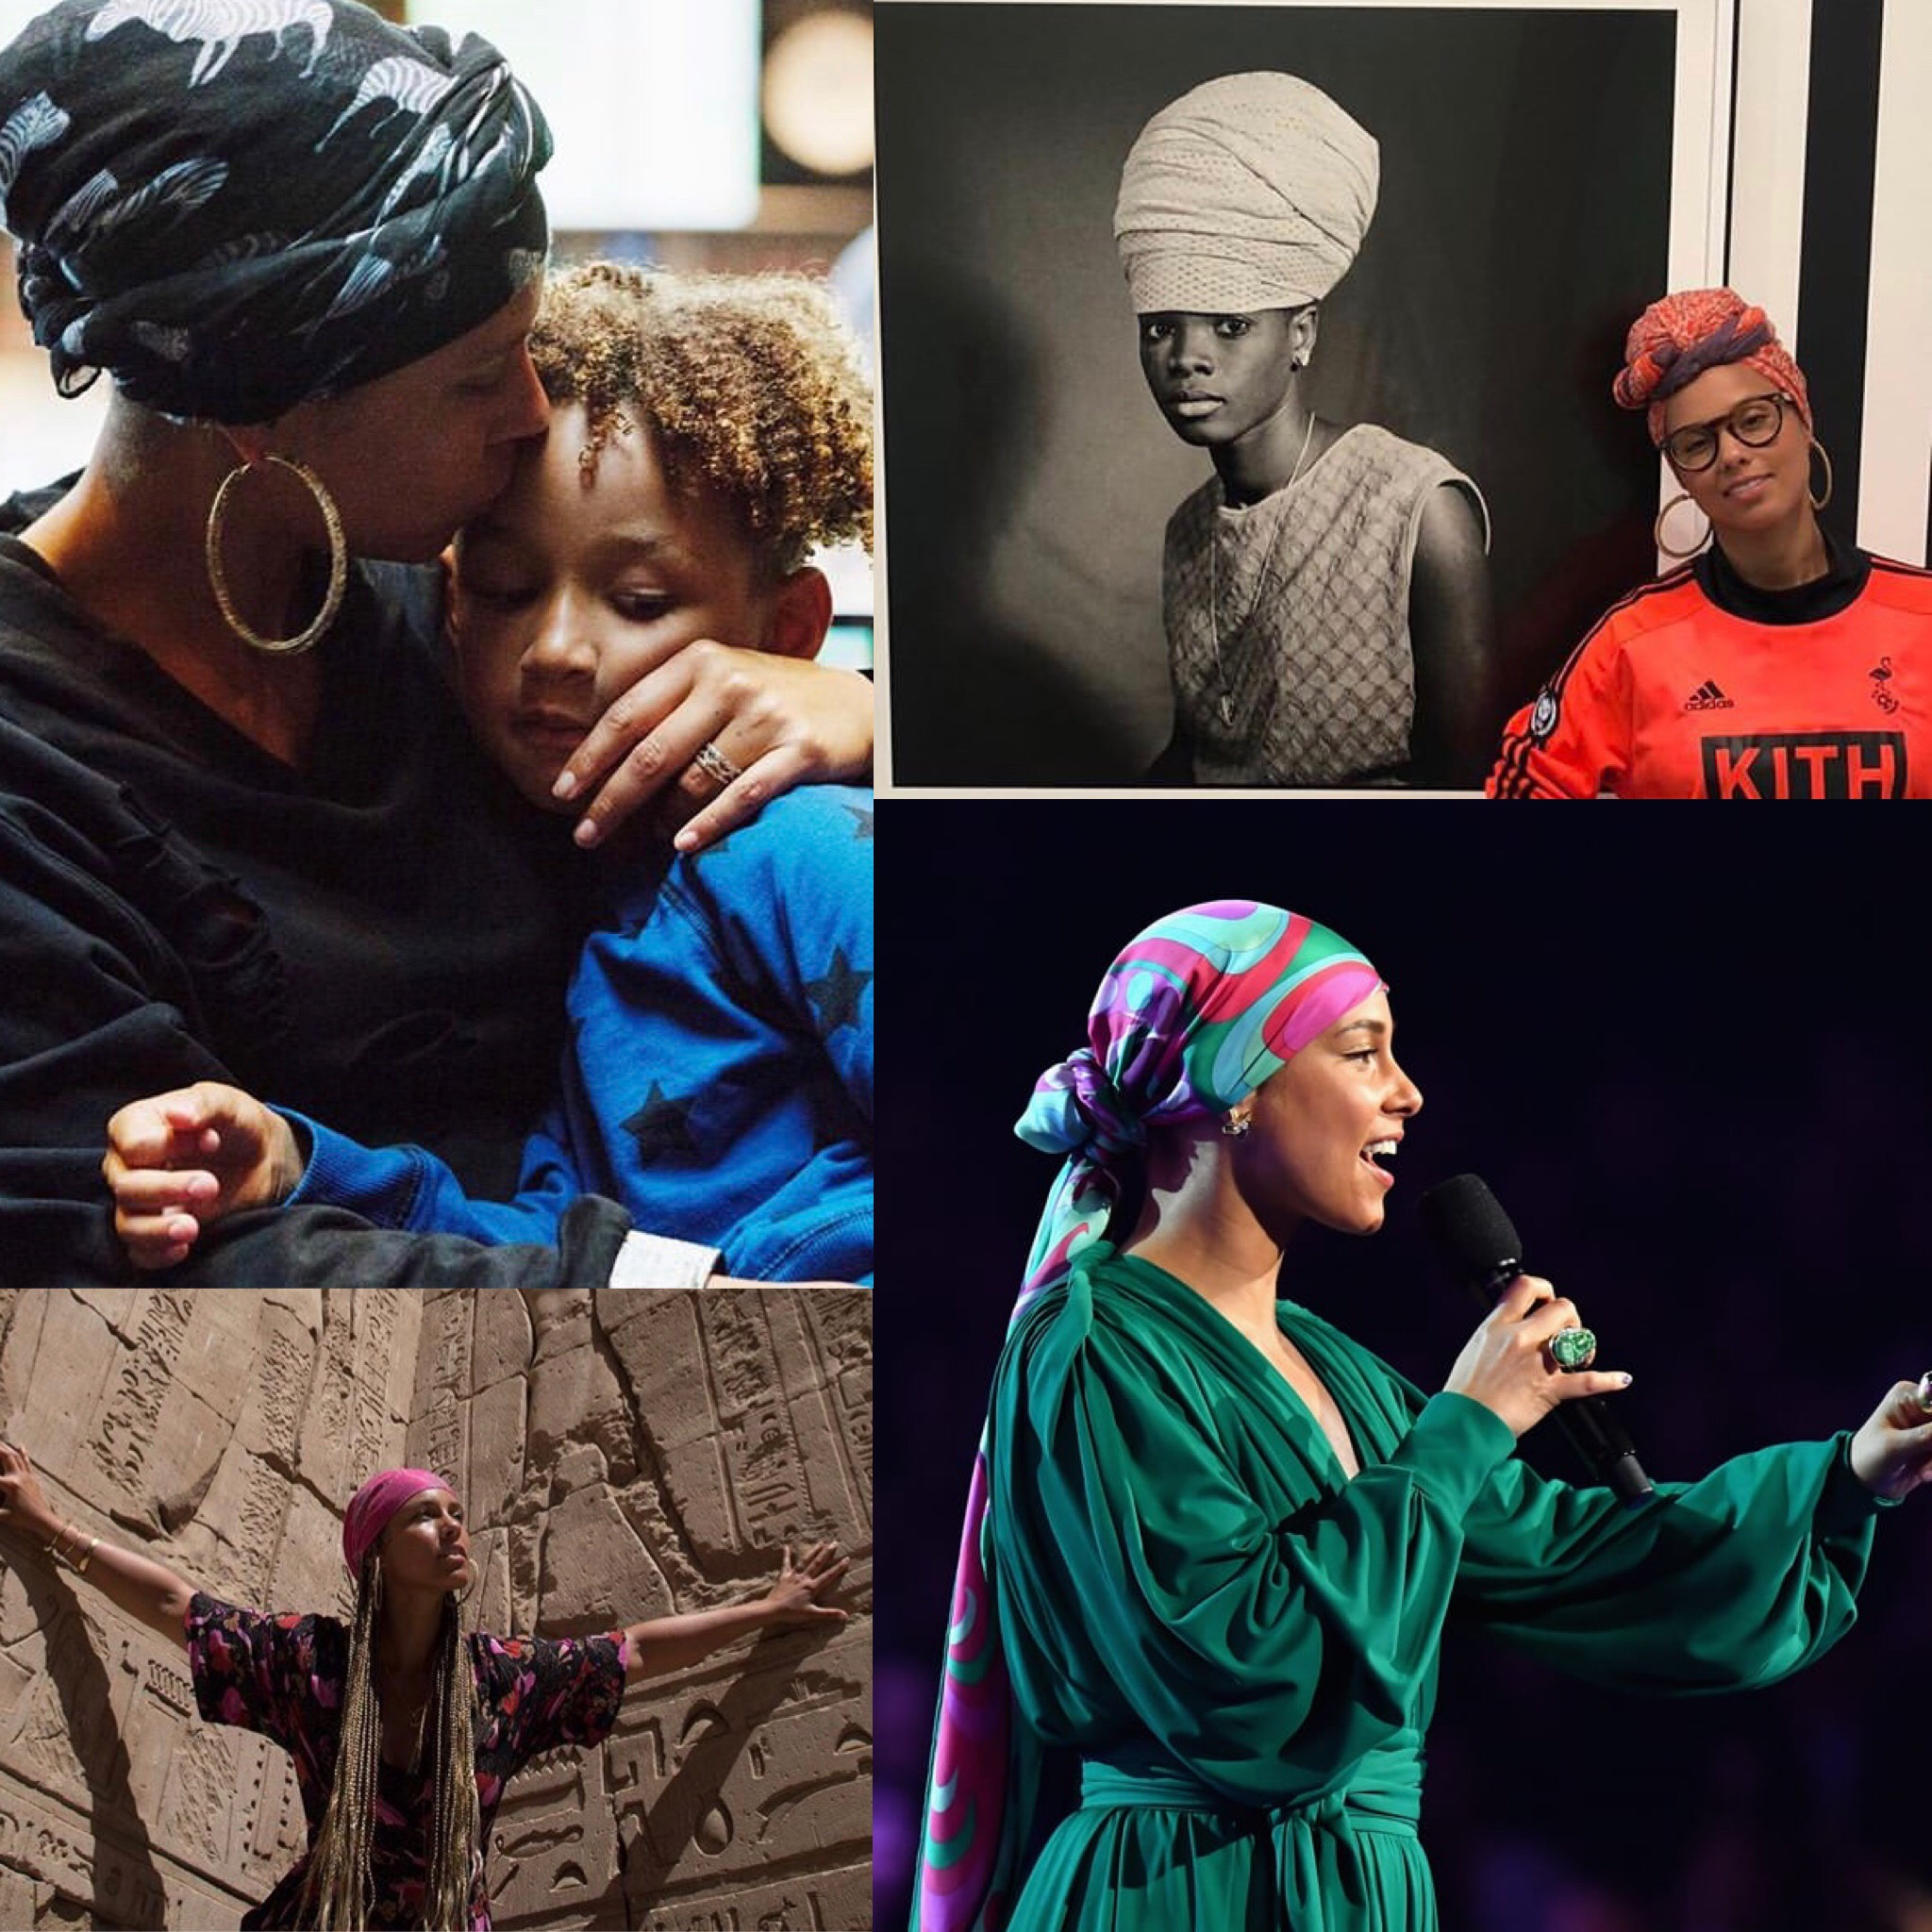 Top Left:   Alicia Keys  and her son  Bottom Left:  Alicia Keys in  Egypt   Top Right:  Alicia Keys and  a Sanlé Sory piece   Bottom Right:  Alicia Keys Hosting the  61st Annual Grammys